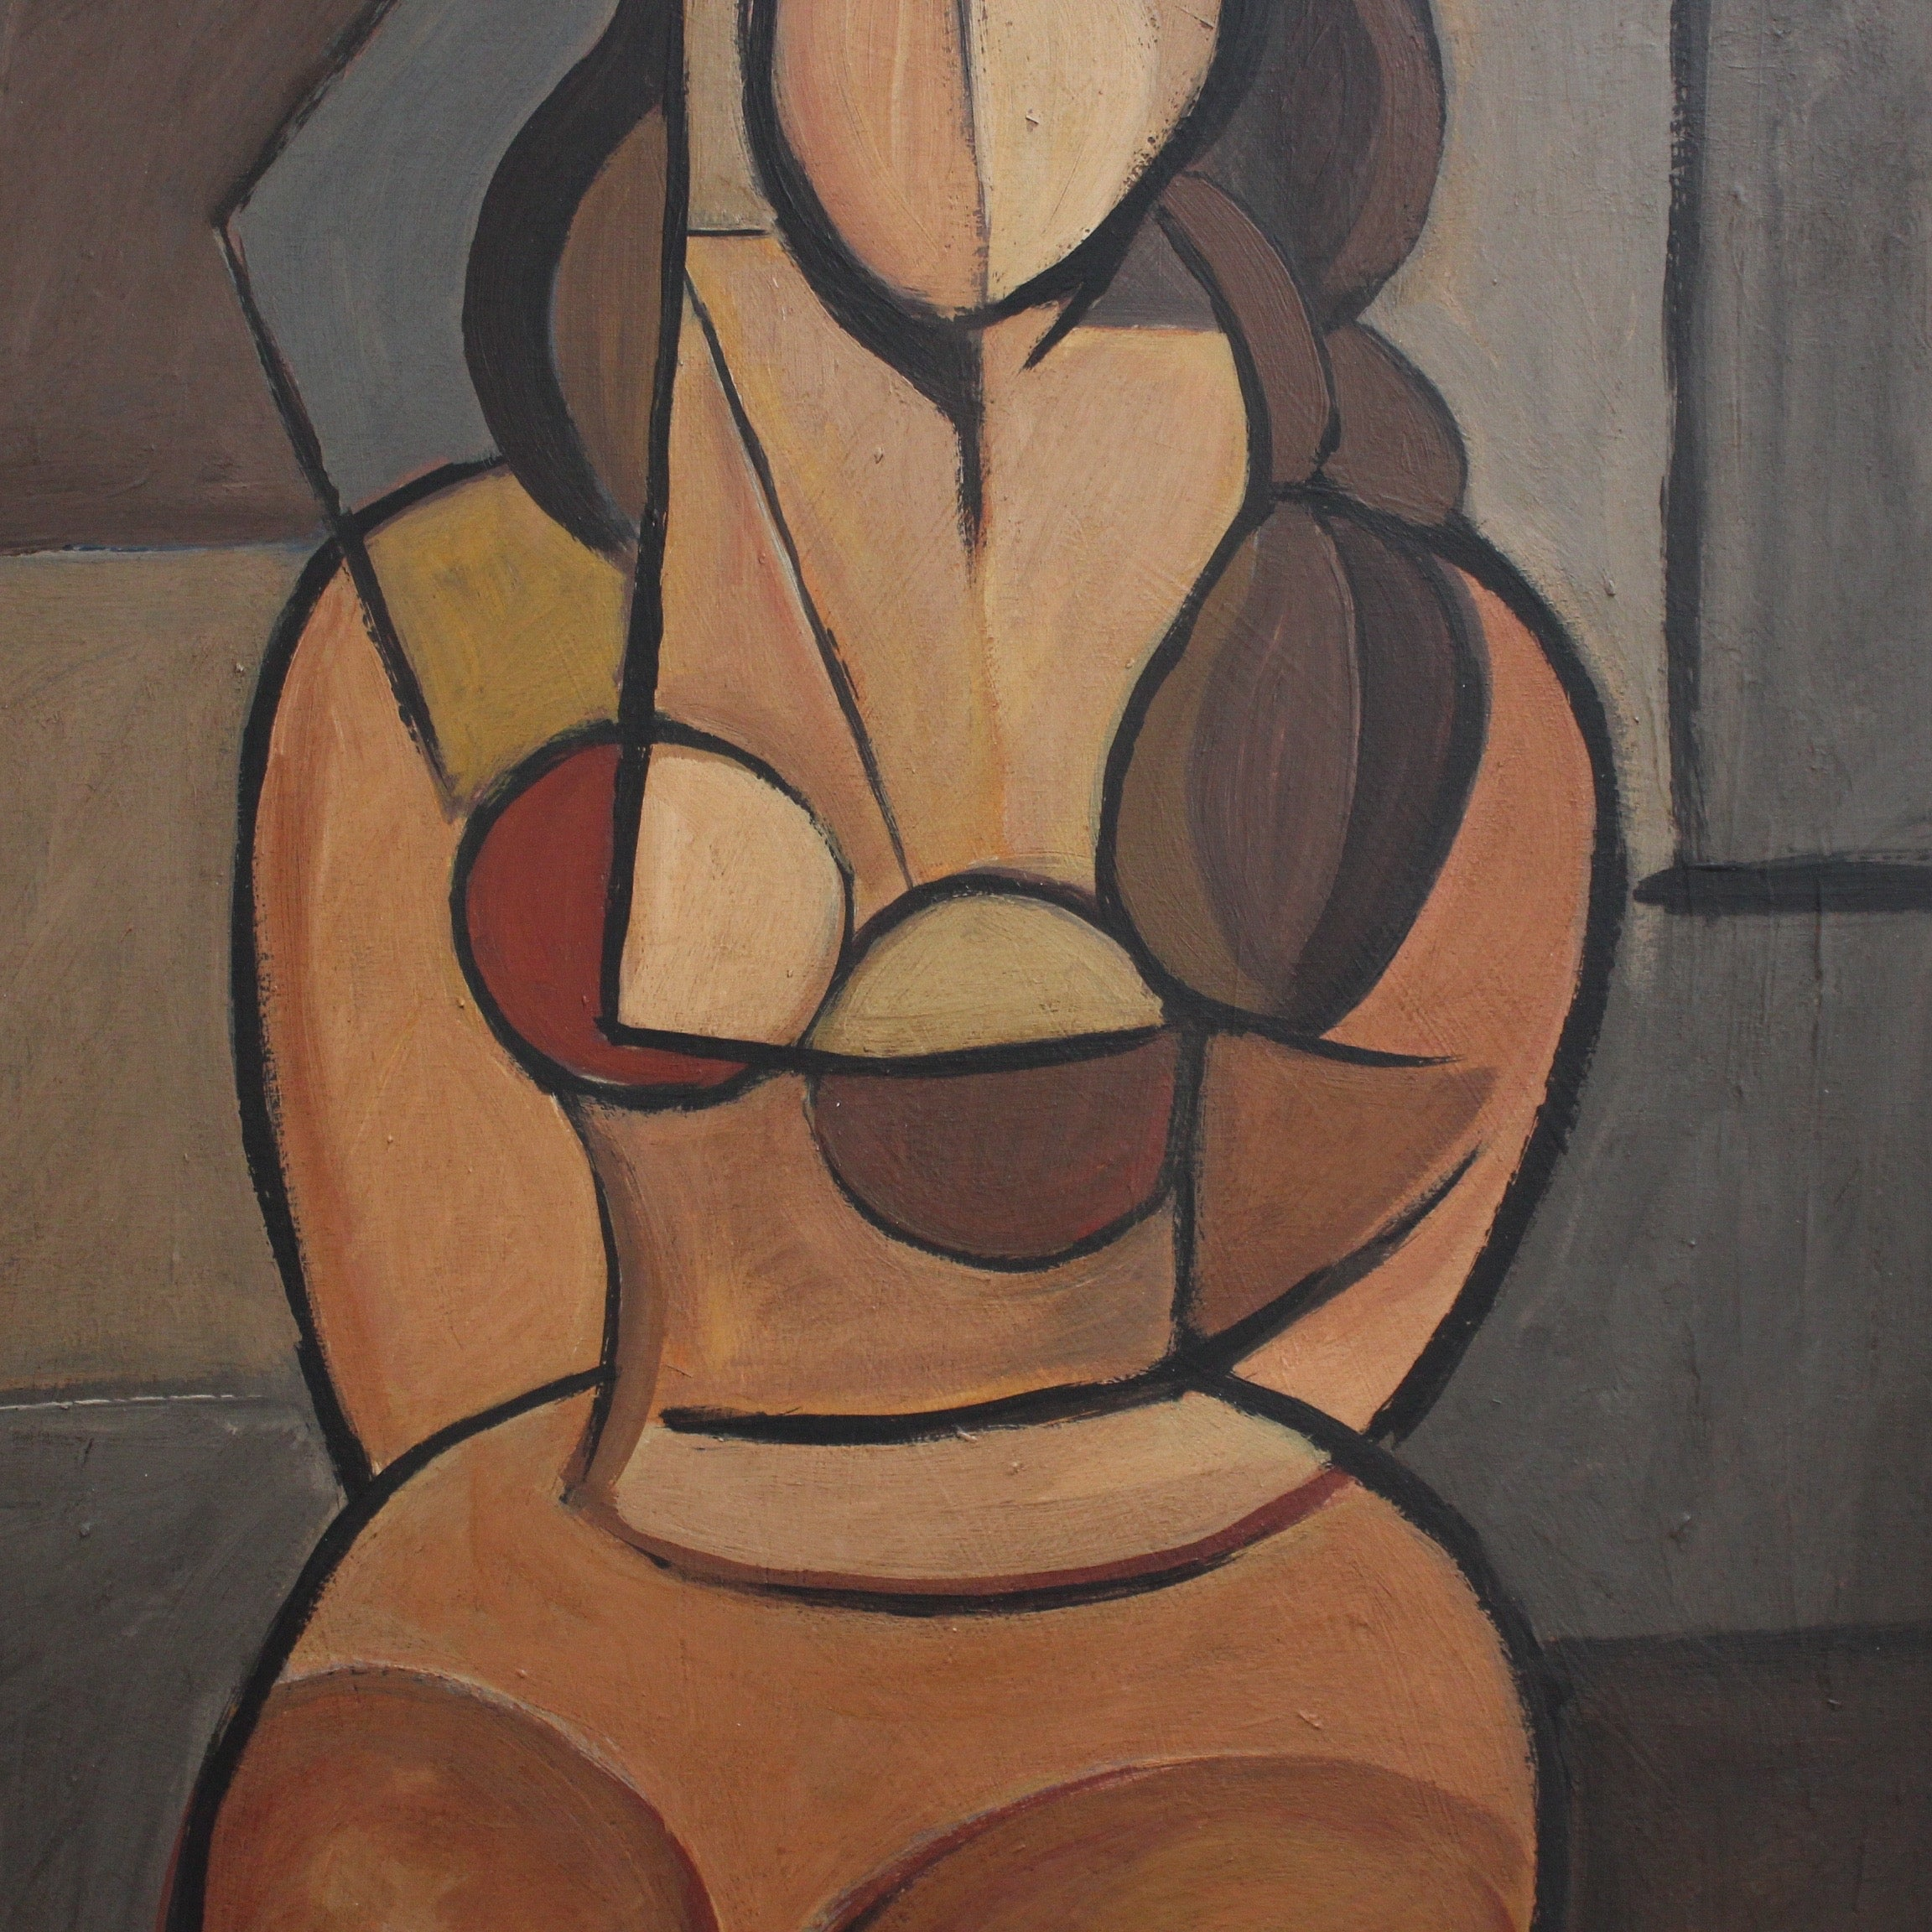 'Seated Cubist Nude' by STM (circa 1950s)